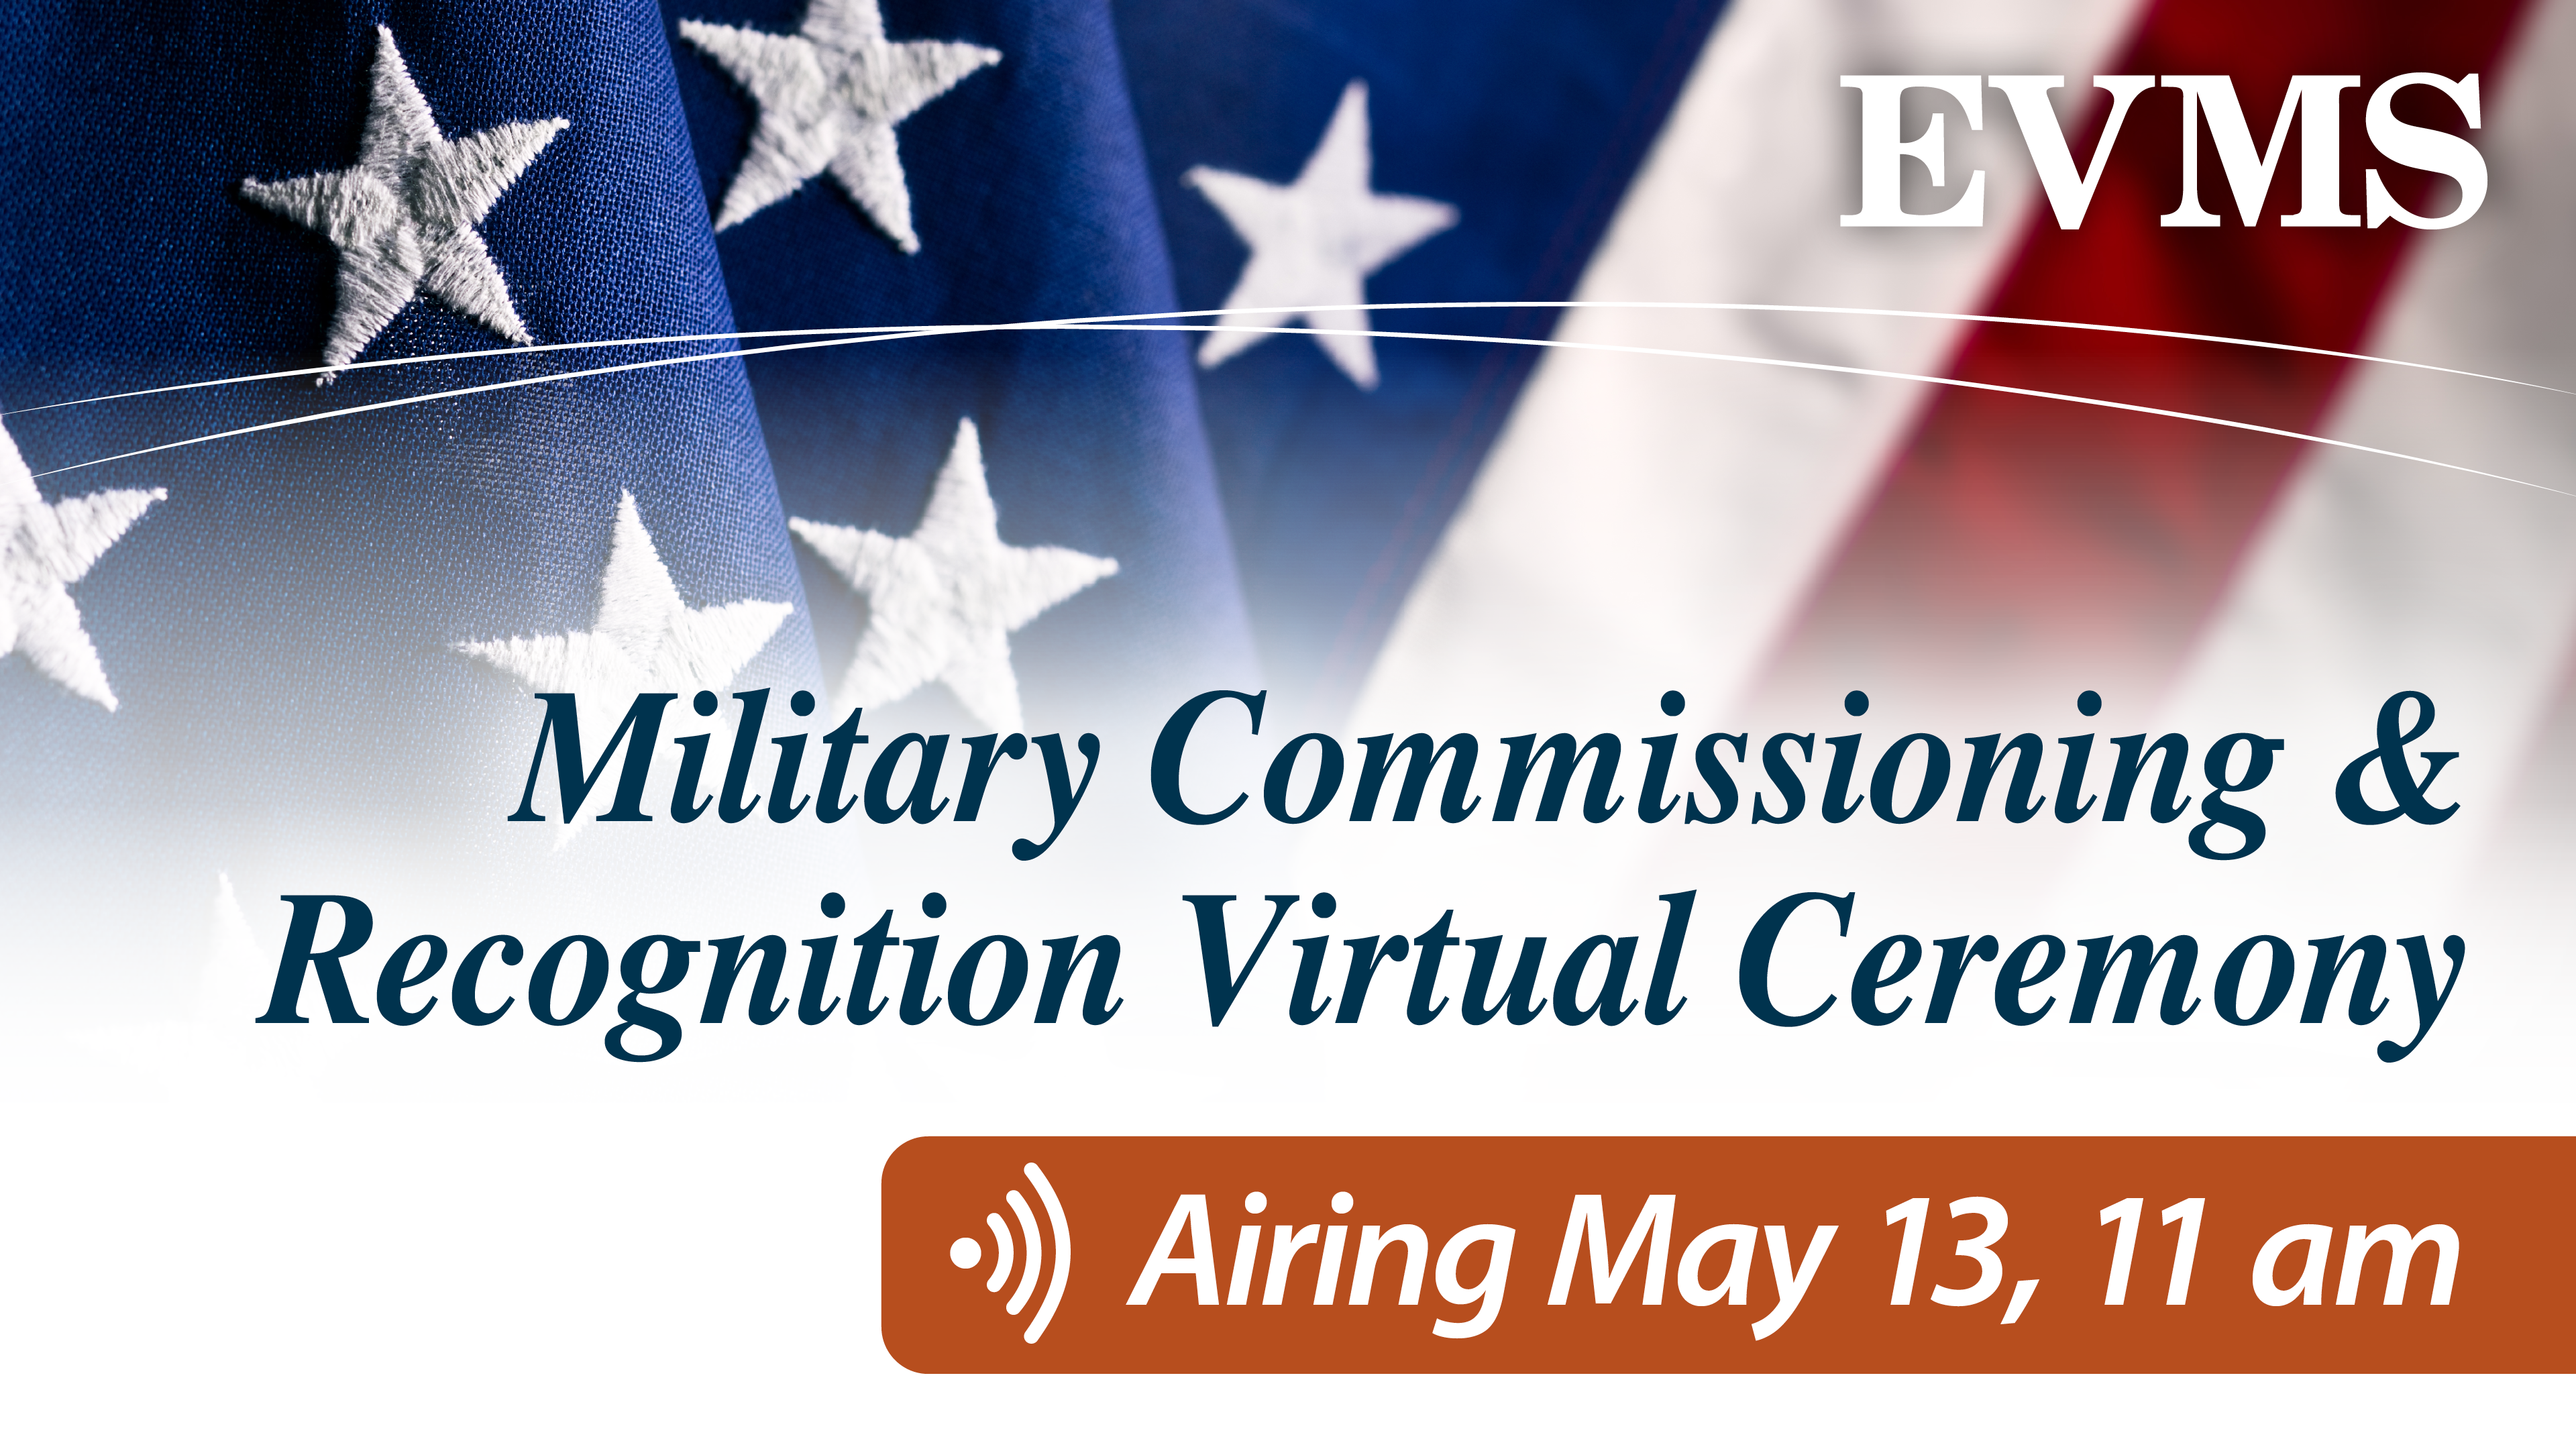 Military Commissioning and Recognition Virtual Ceremony, Airing May 13, 11 a.m.